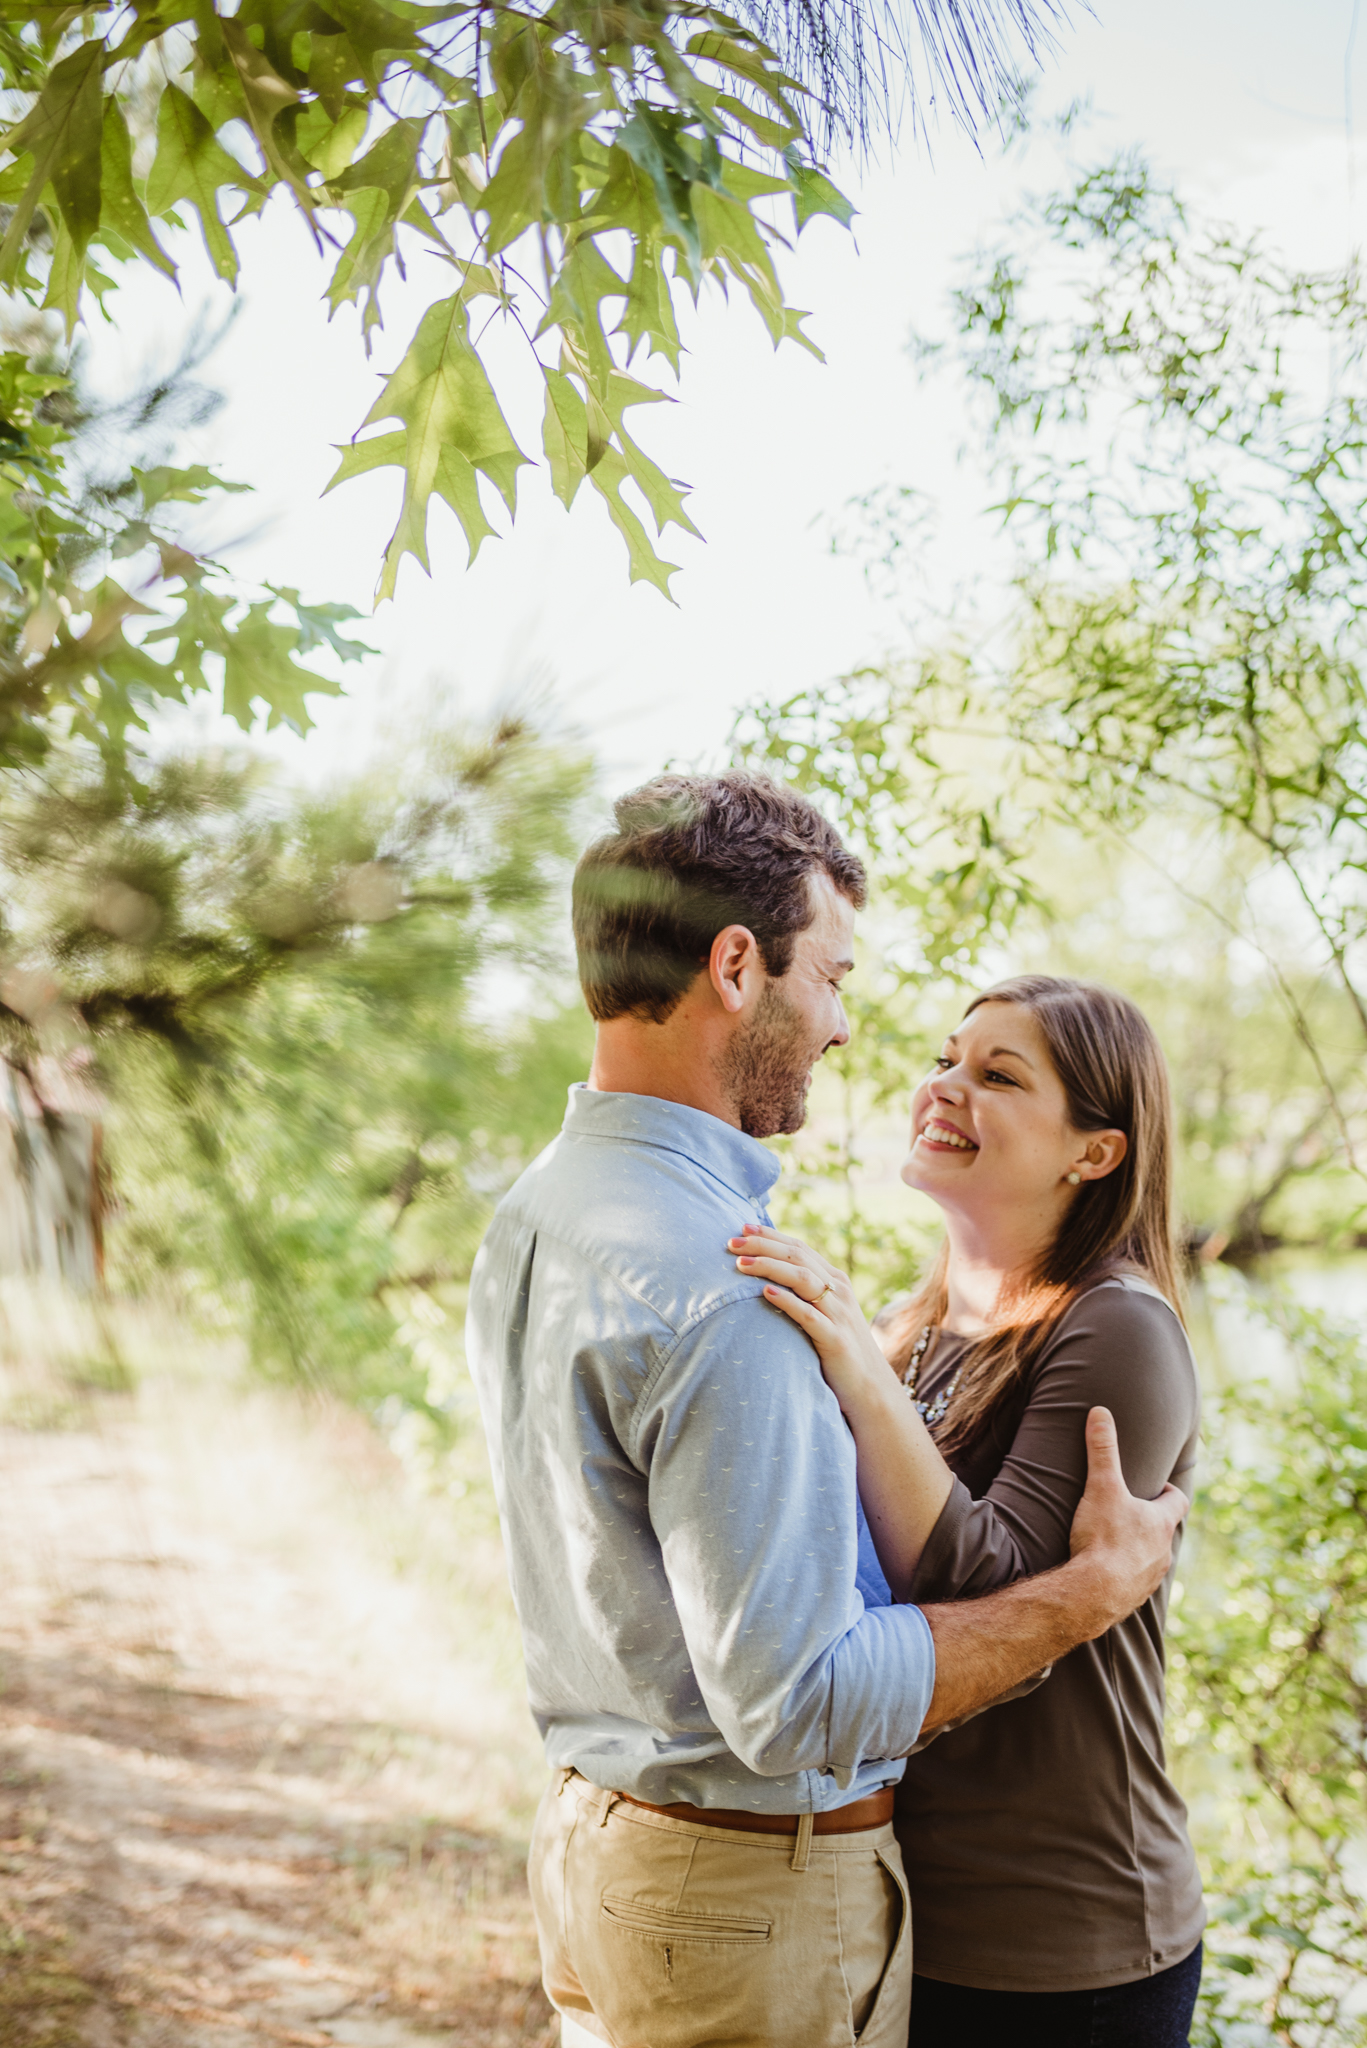 The bride and groom to be pose together on a dirt path for their engagement pictures with Rose Trail Images at their family farm in Benson, North Carolina.